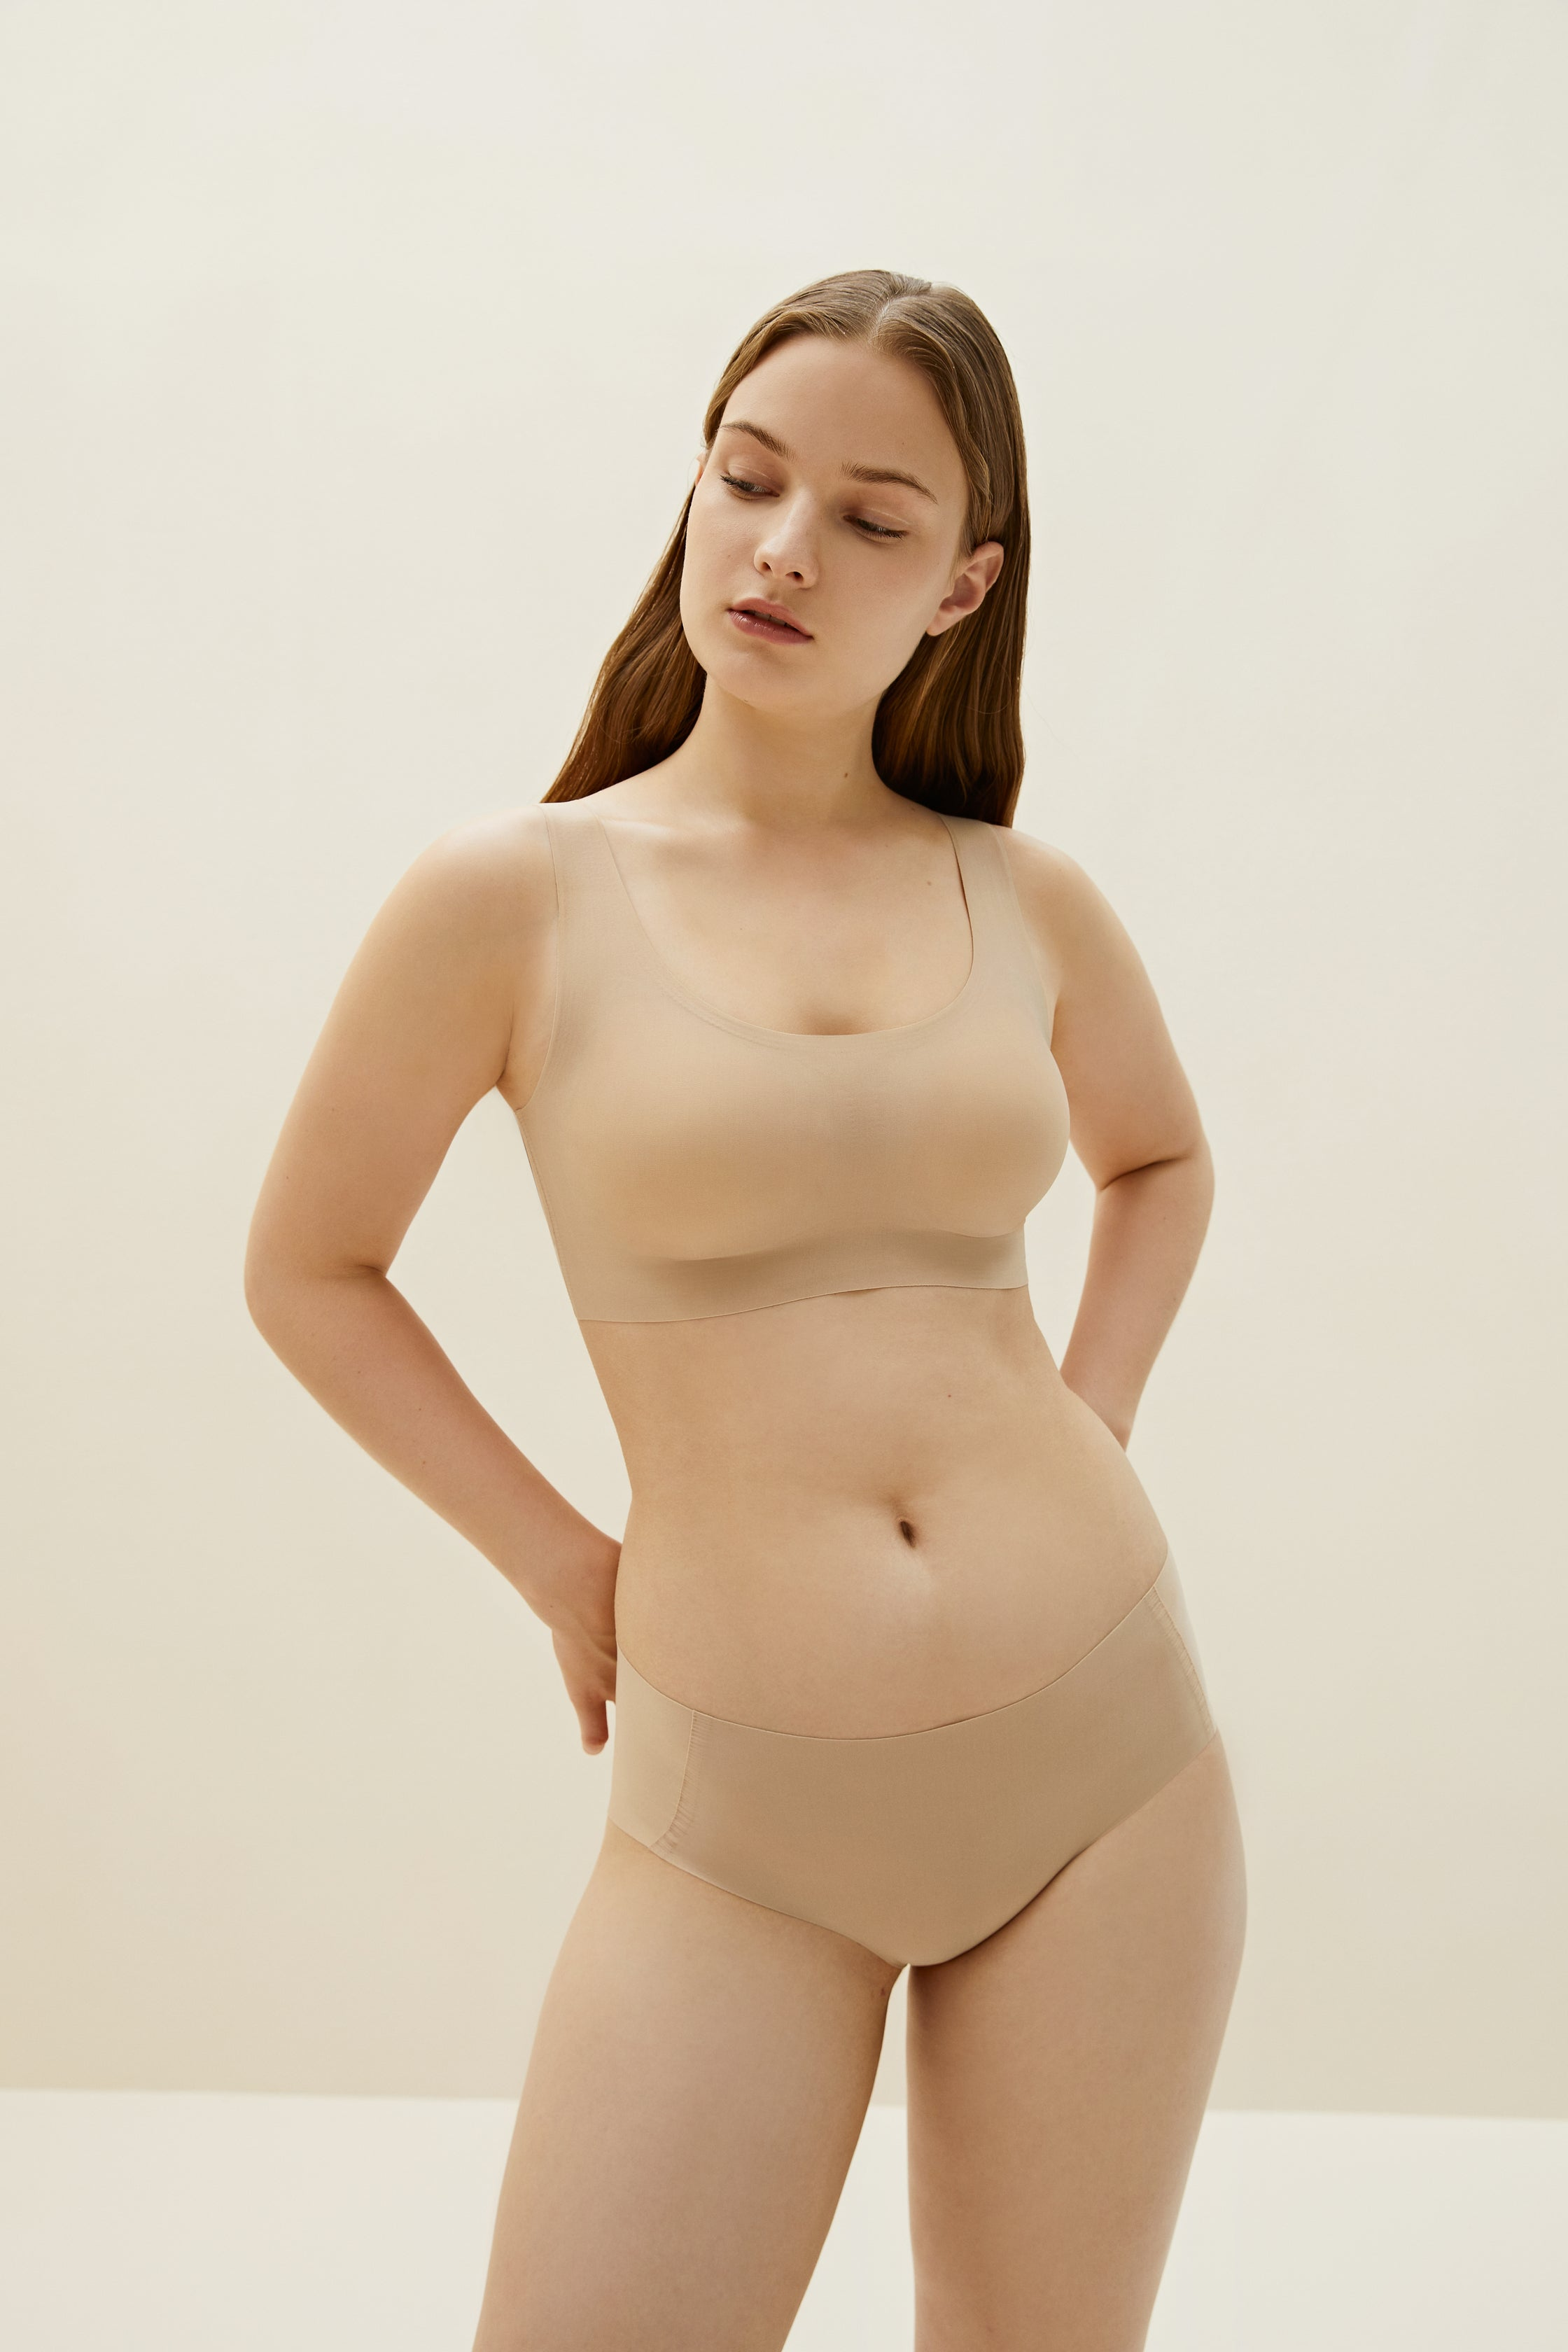 Model wearing NEIWAI's Barely Zero bra and brief set in nude color.